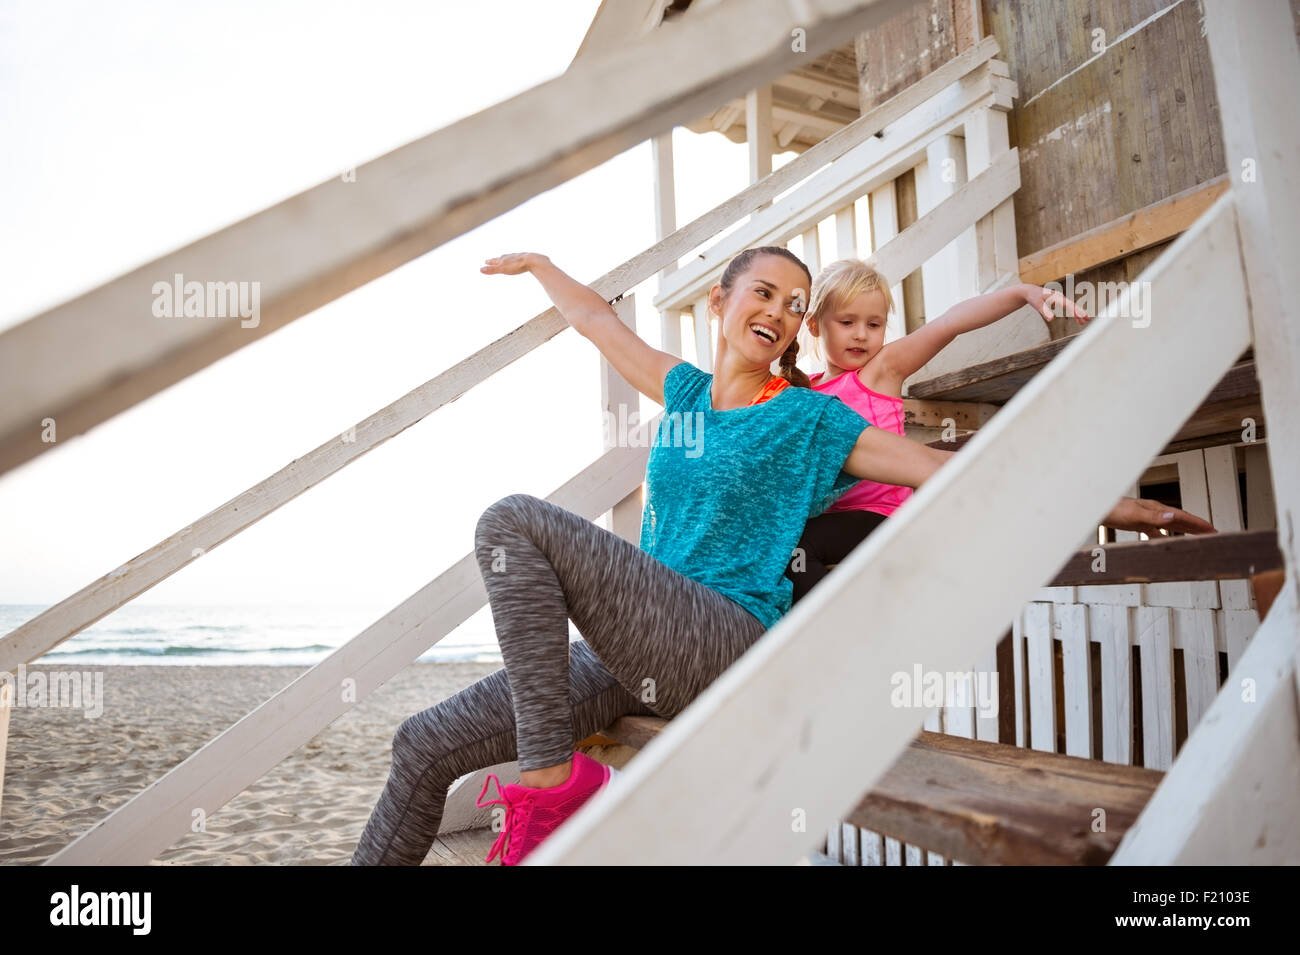 A young, happy mother shows her young daughter how to fly. They are playing and pretending to be seagulls, flying - Stock Image